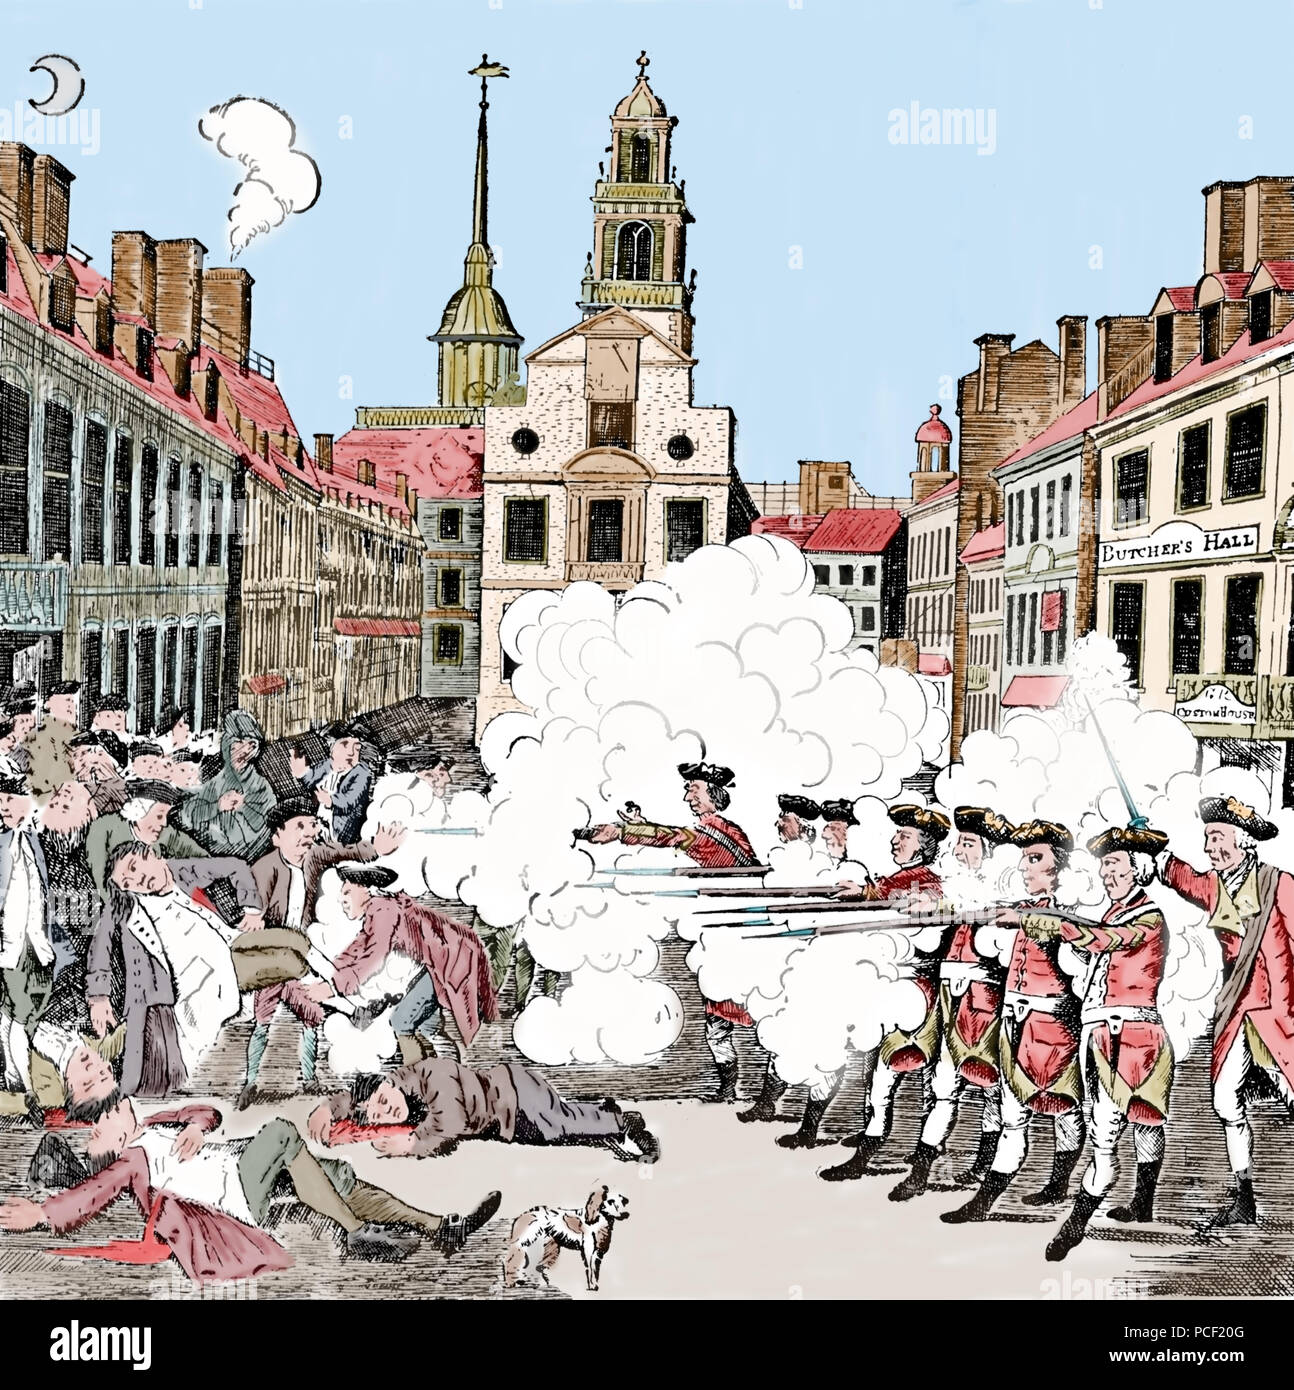 The Boston Massacre. March 5, 1770. Part of the American Revolution. Color engraving. 18th century. - Stock Image